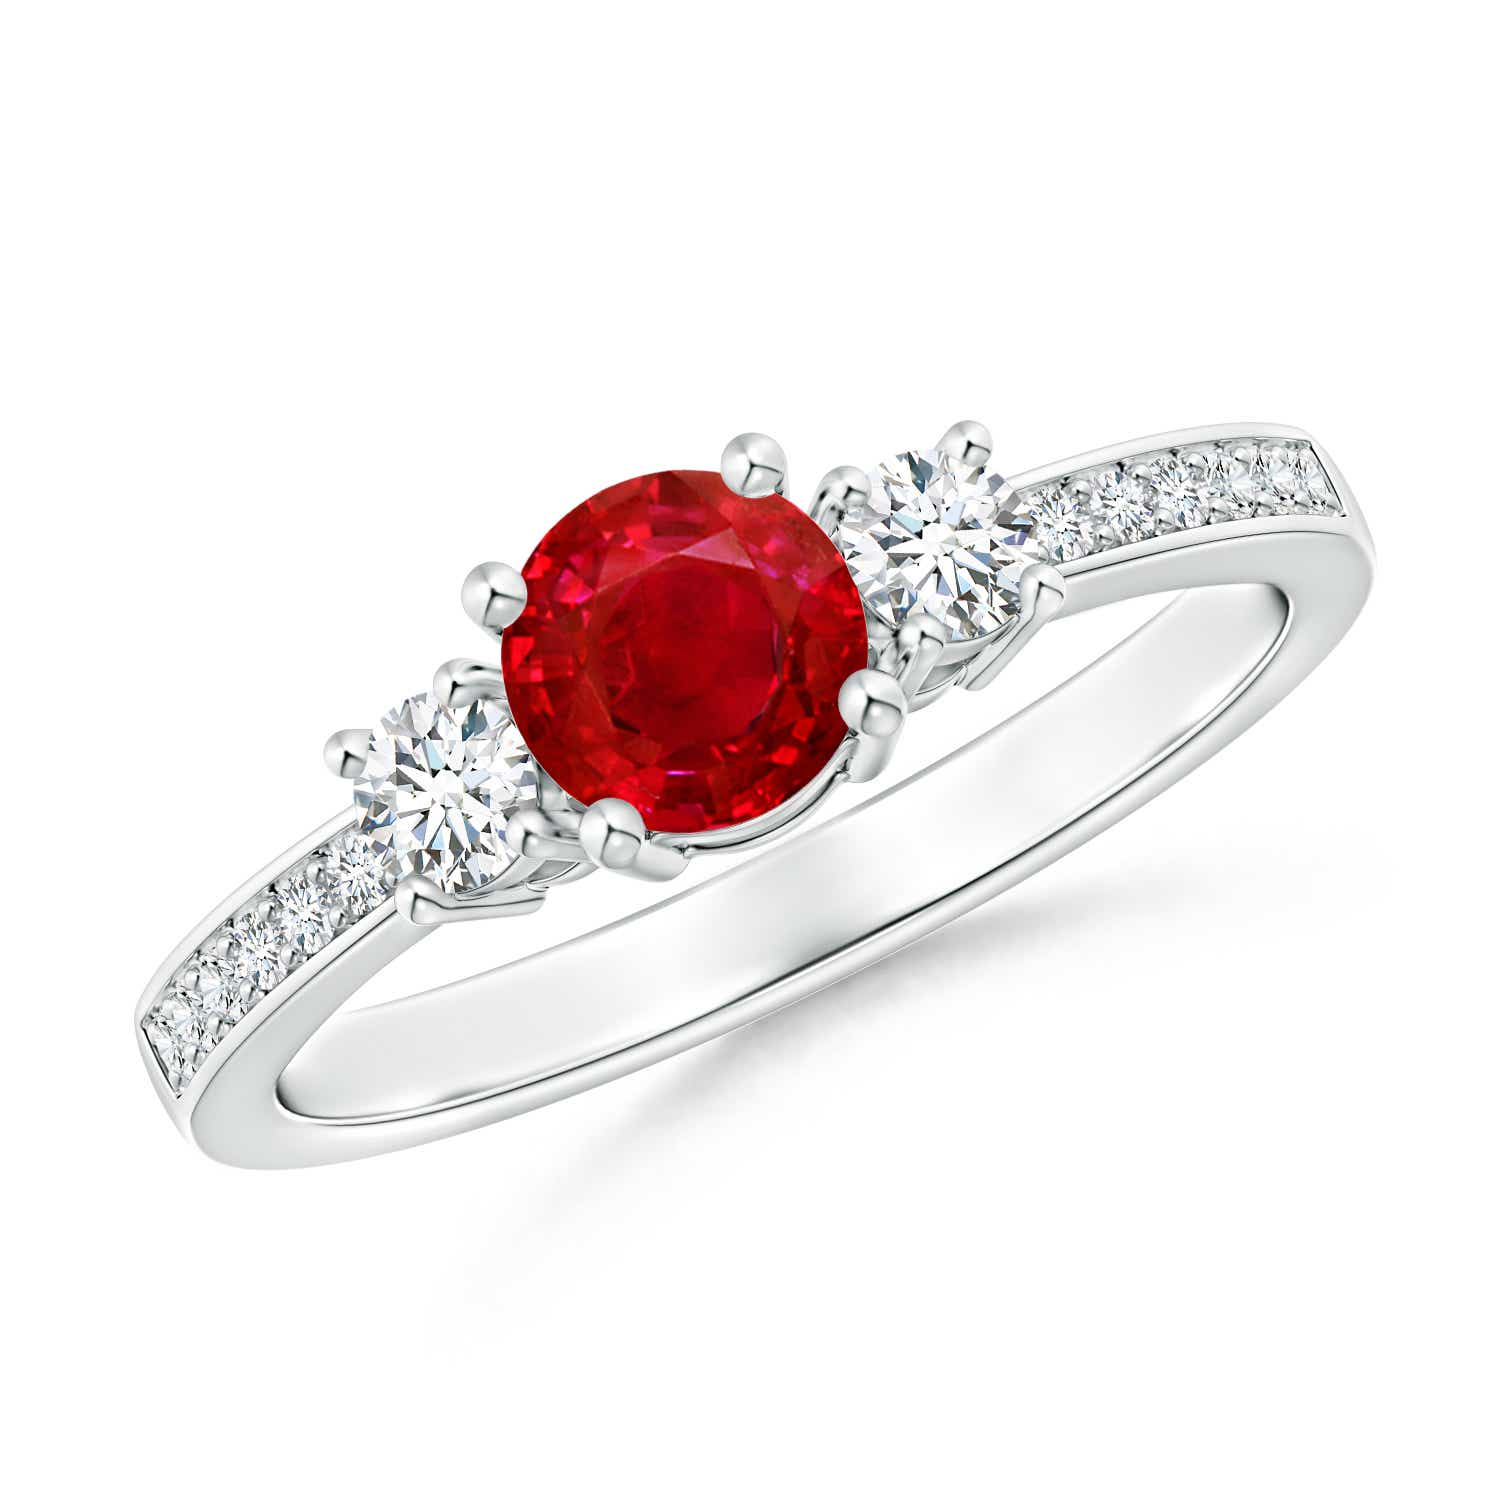 Angara Oval Three Stone Ruby Engagement Ring with Diamonds in 14K Yellow Gold kpLkZr